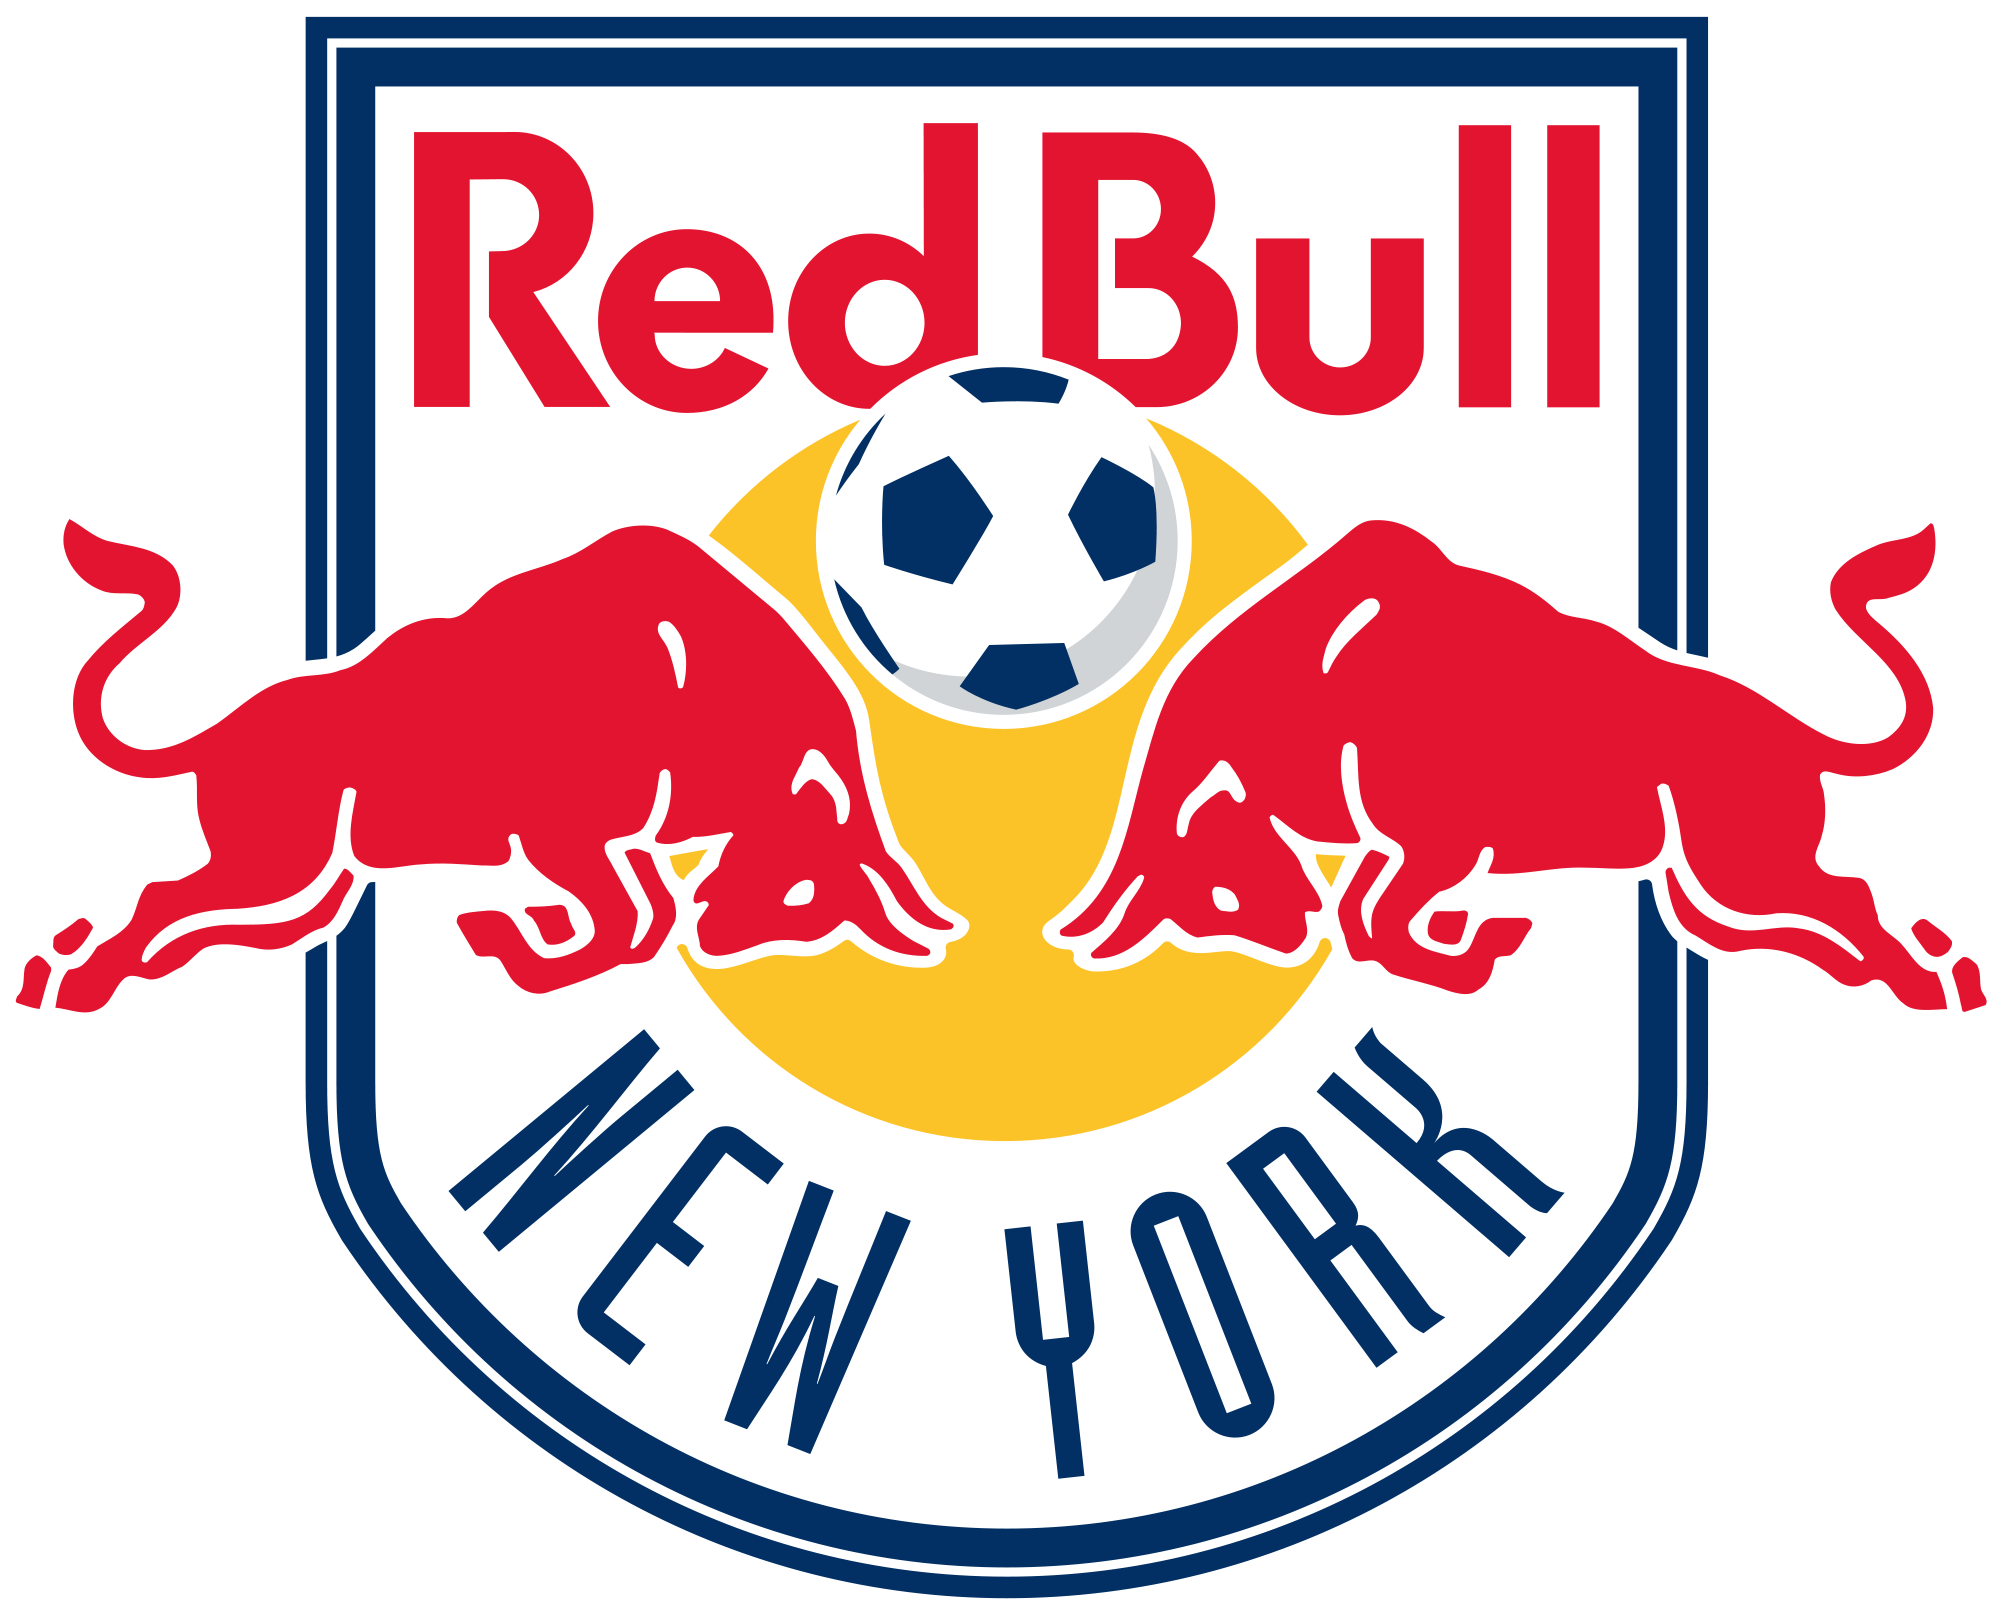 Red bull new york.png